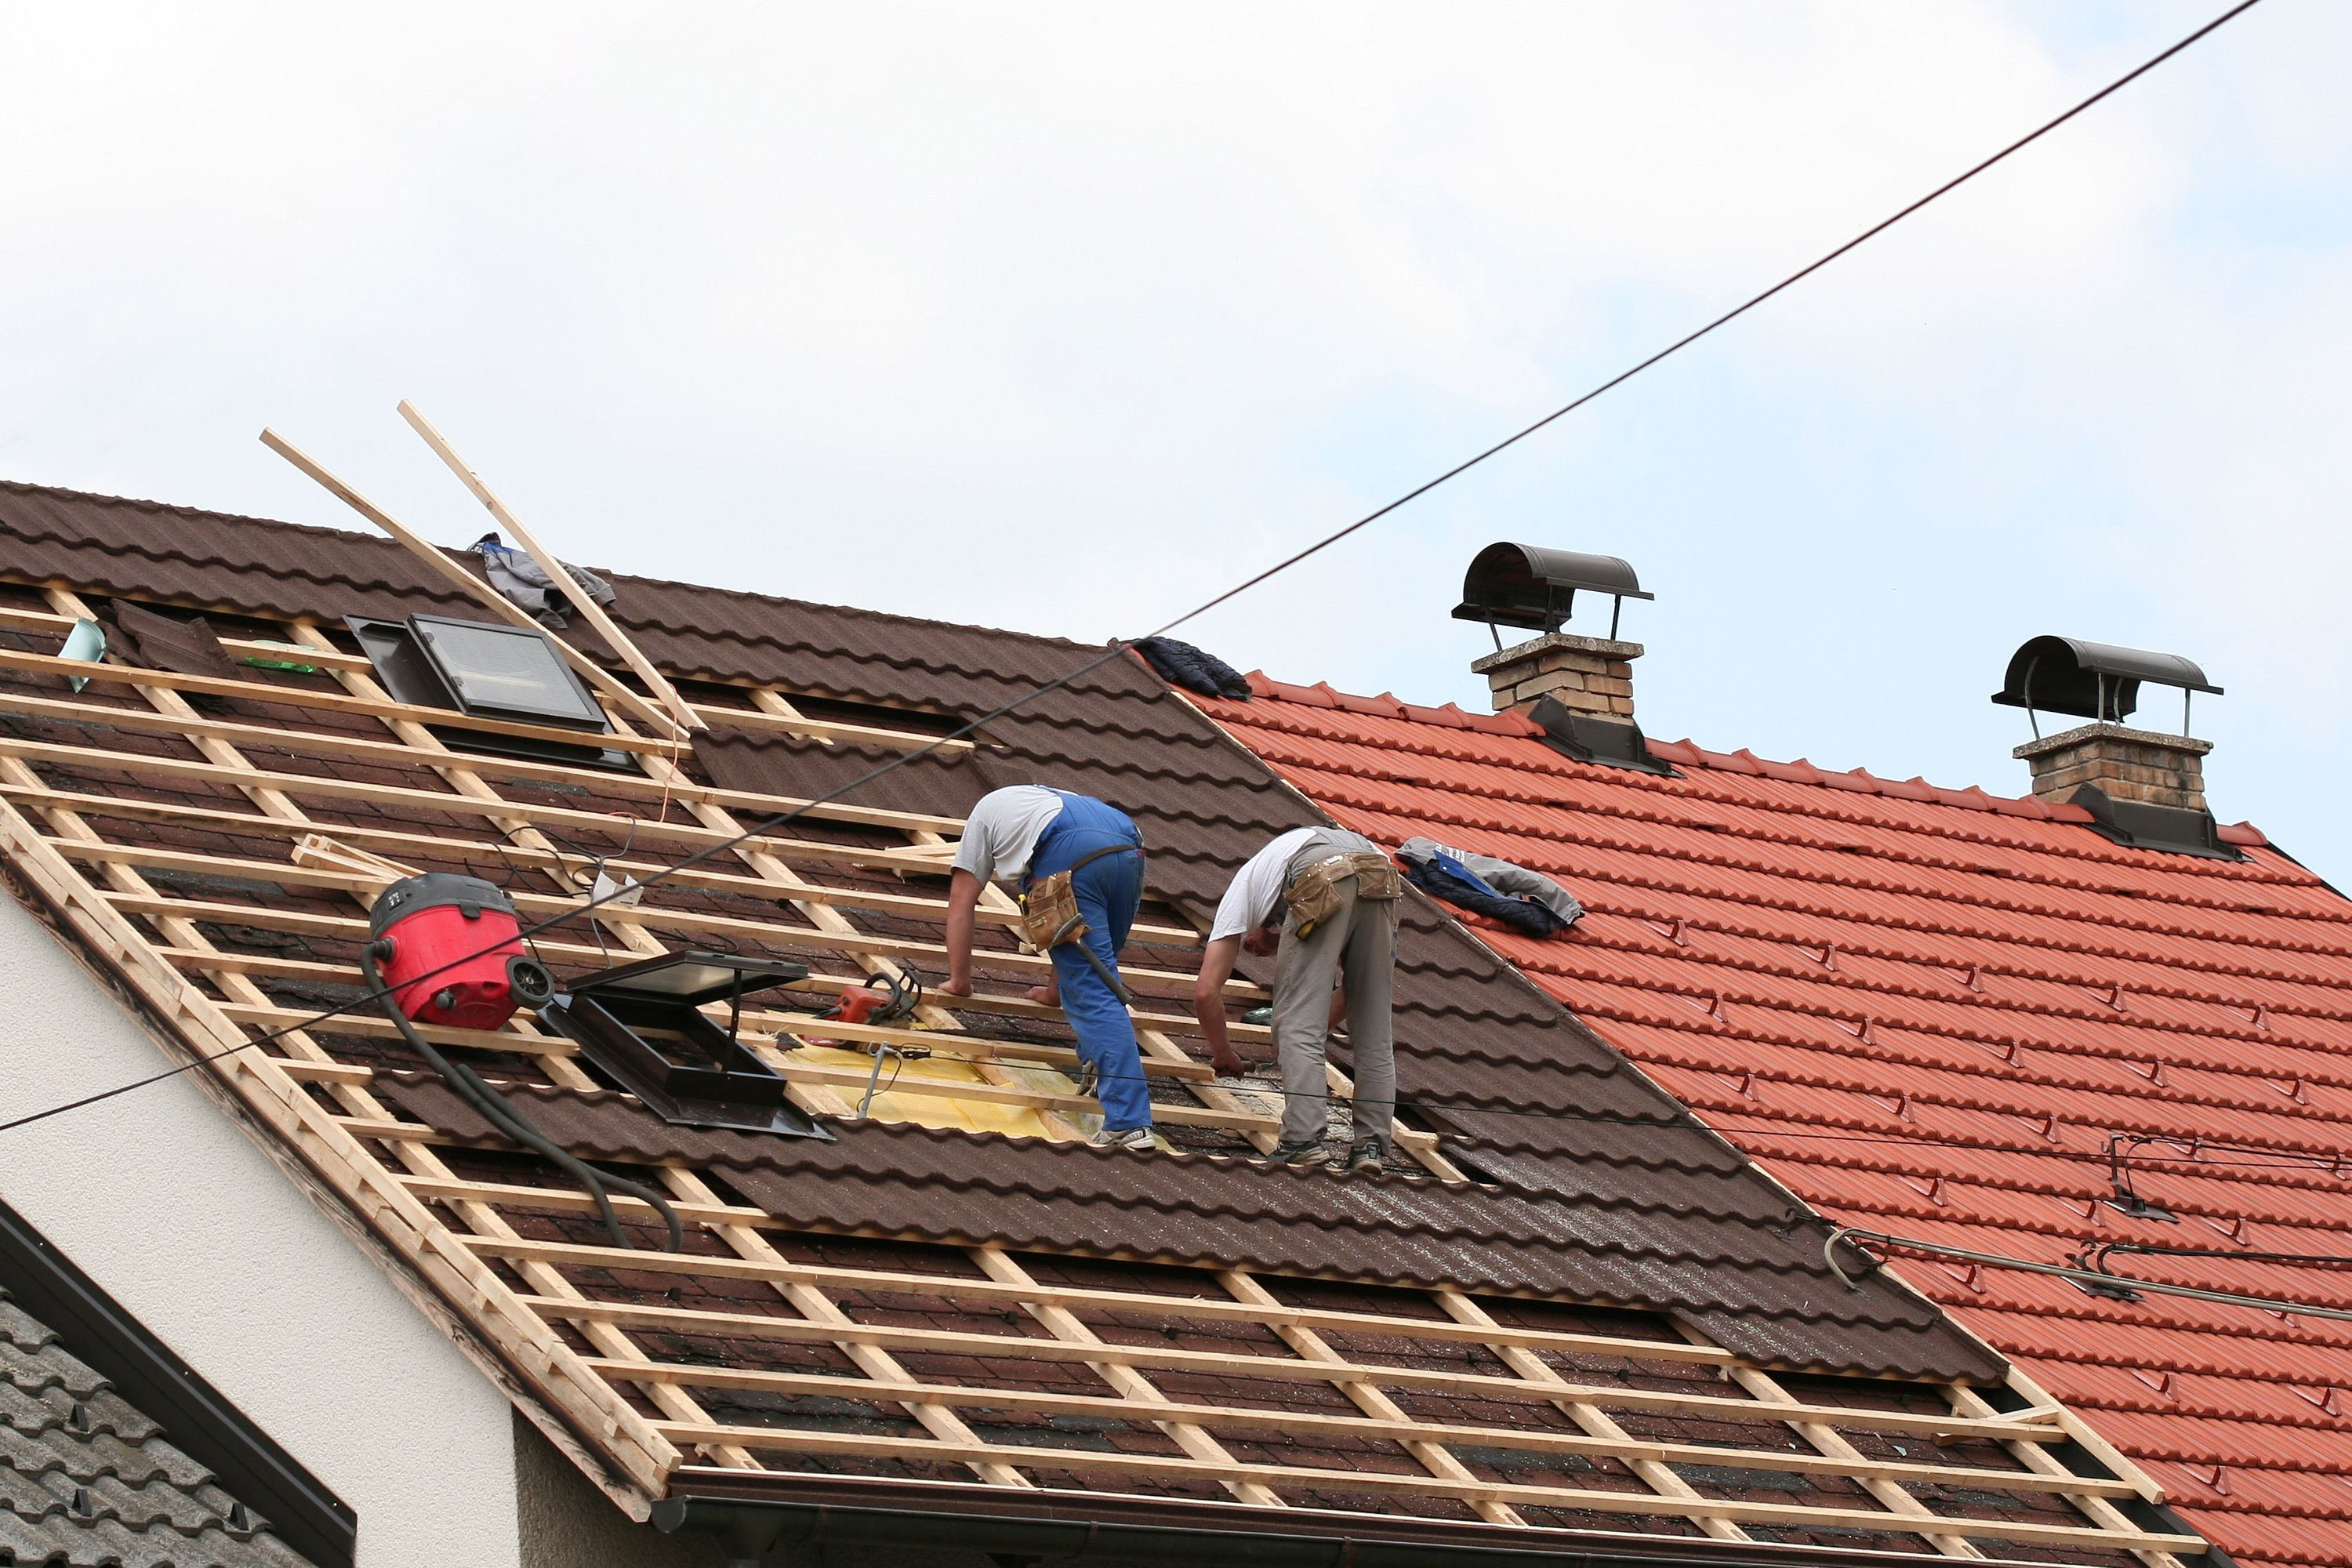 Properly Trained Roofers In Los Angeles (With images) | Roof ...